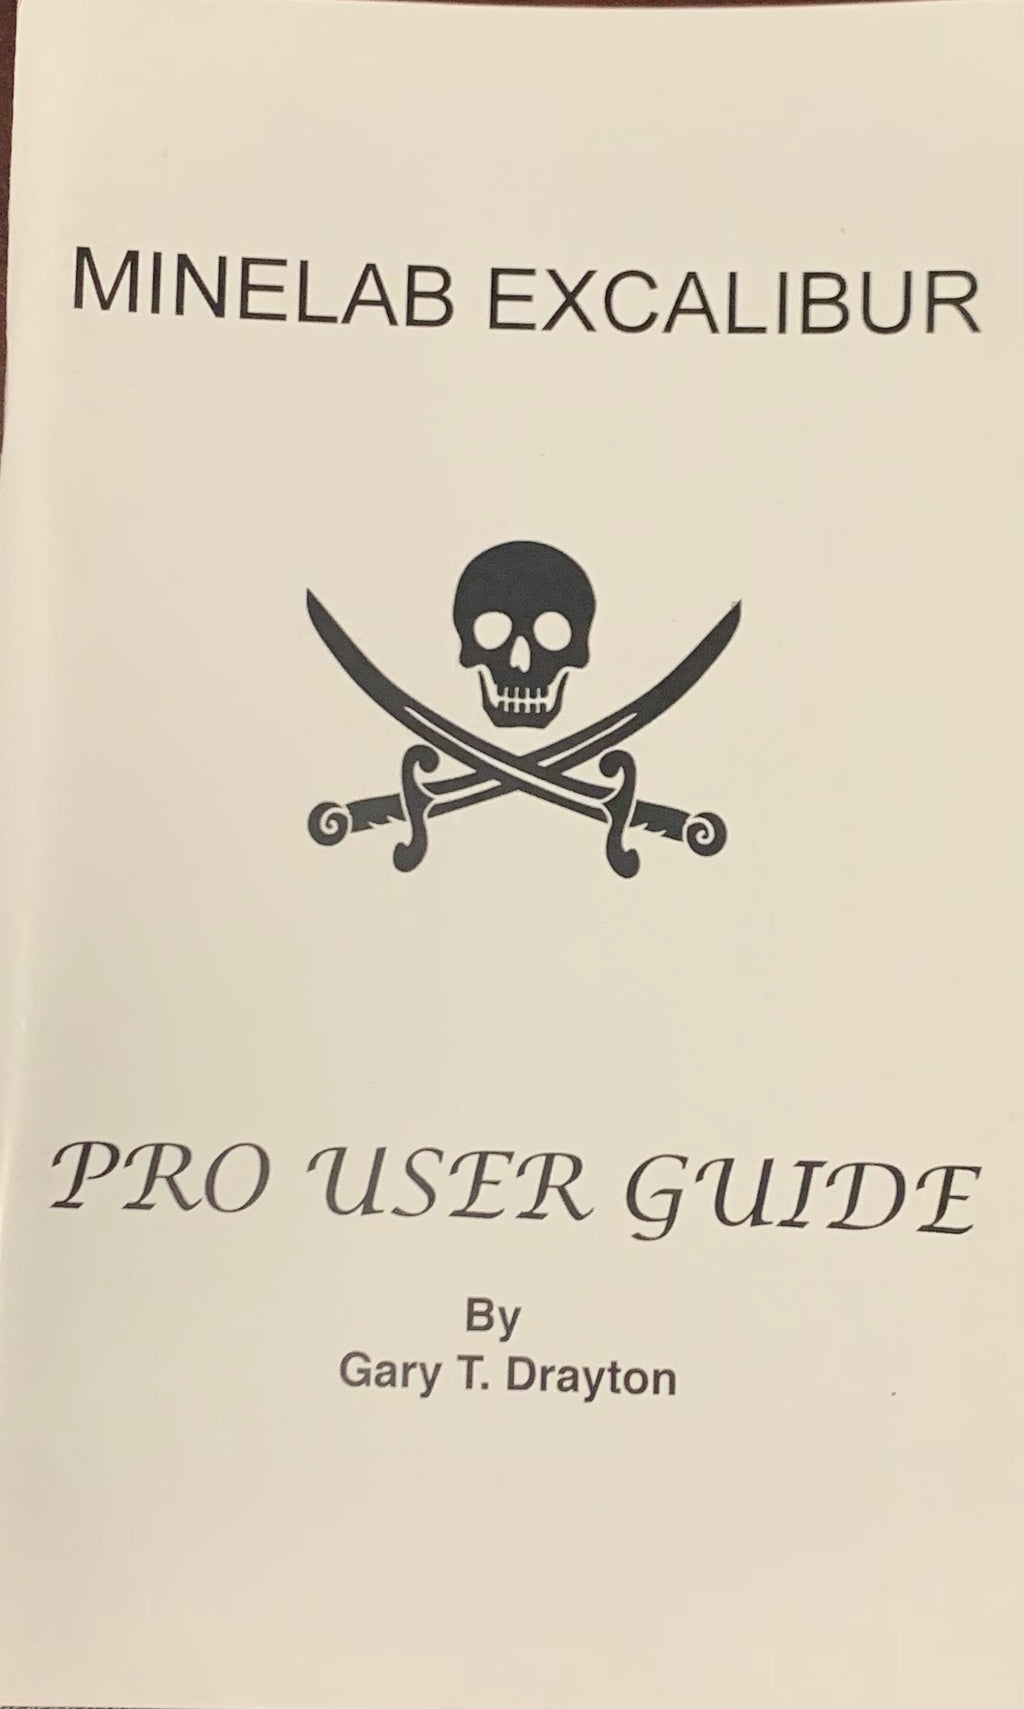 Minelab Excalibur Pro User Guide By Gary Drayton